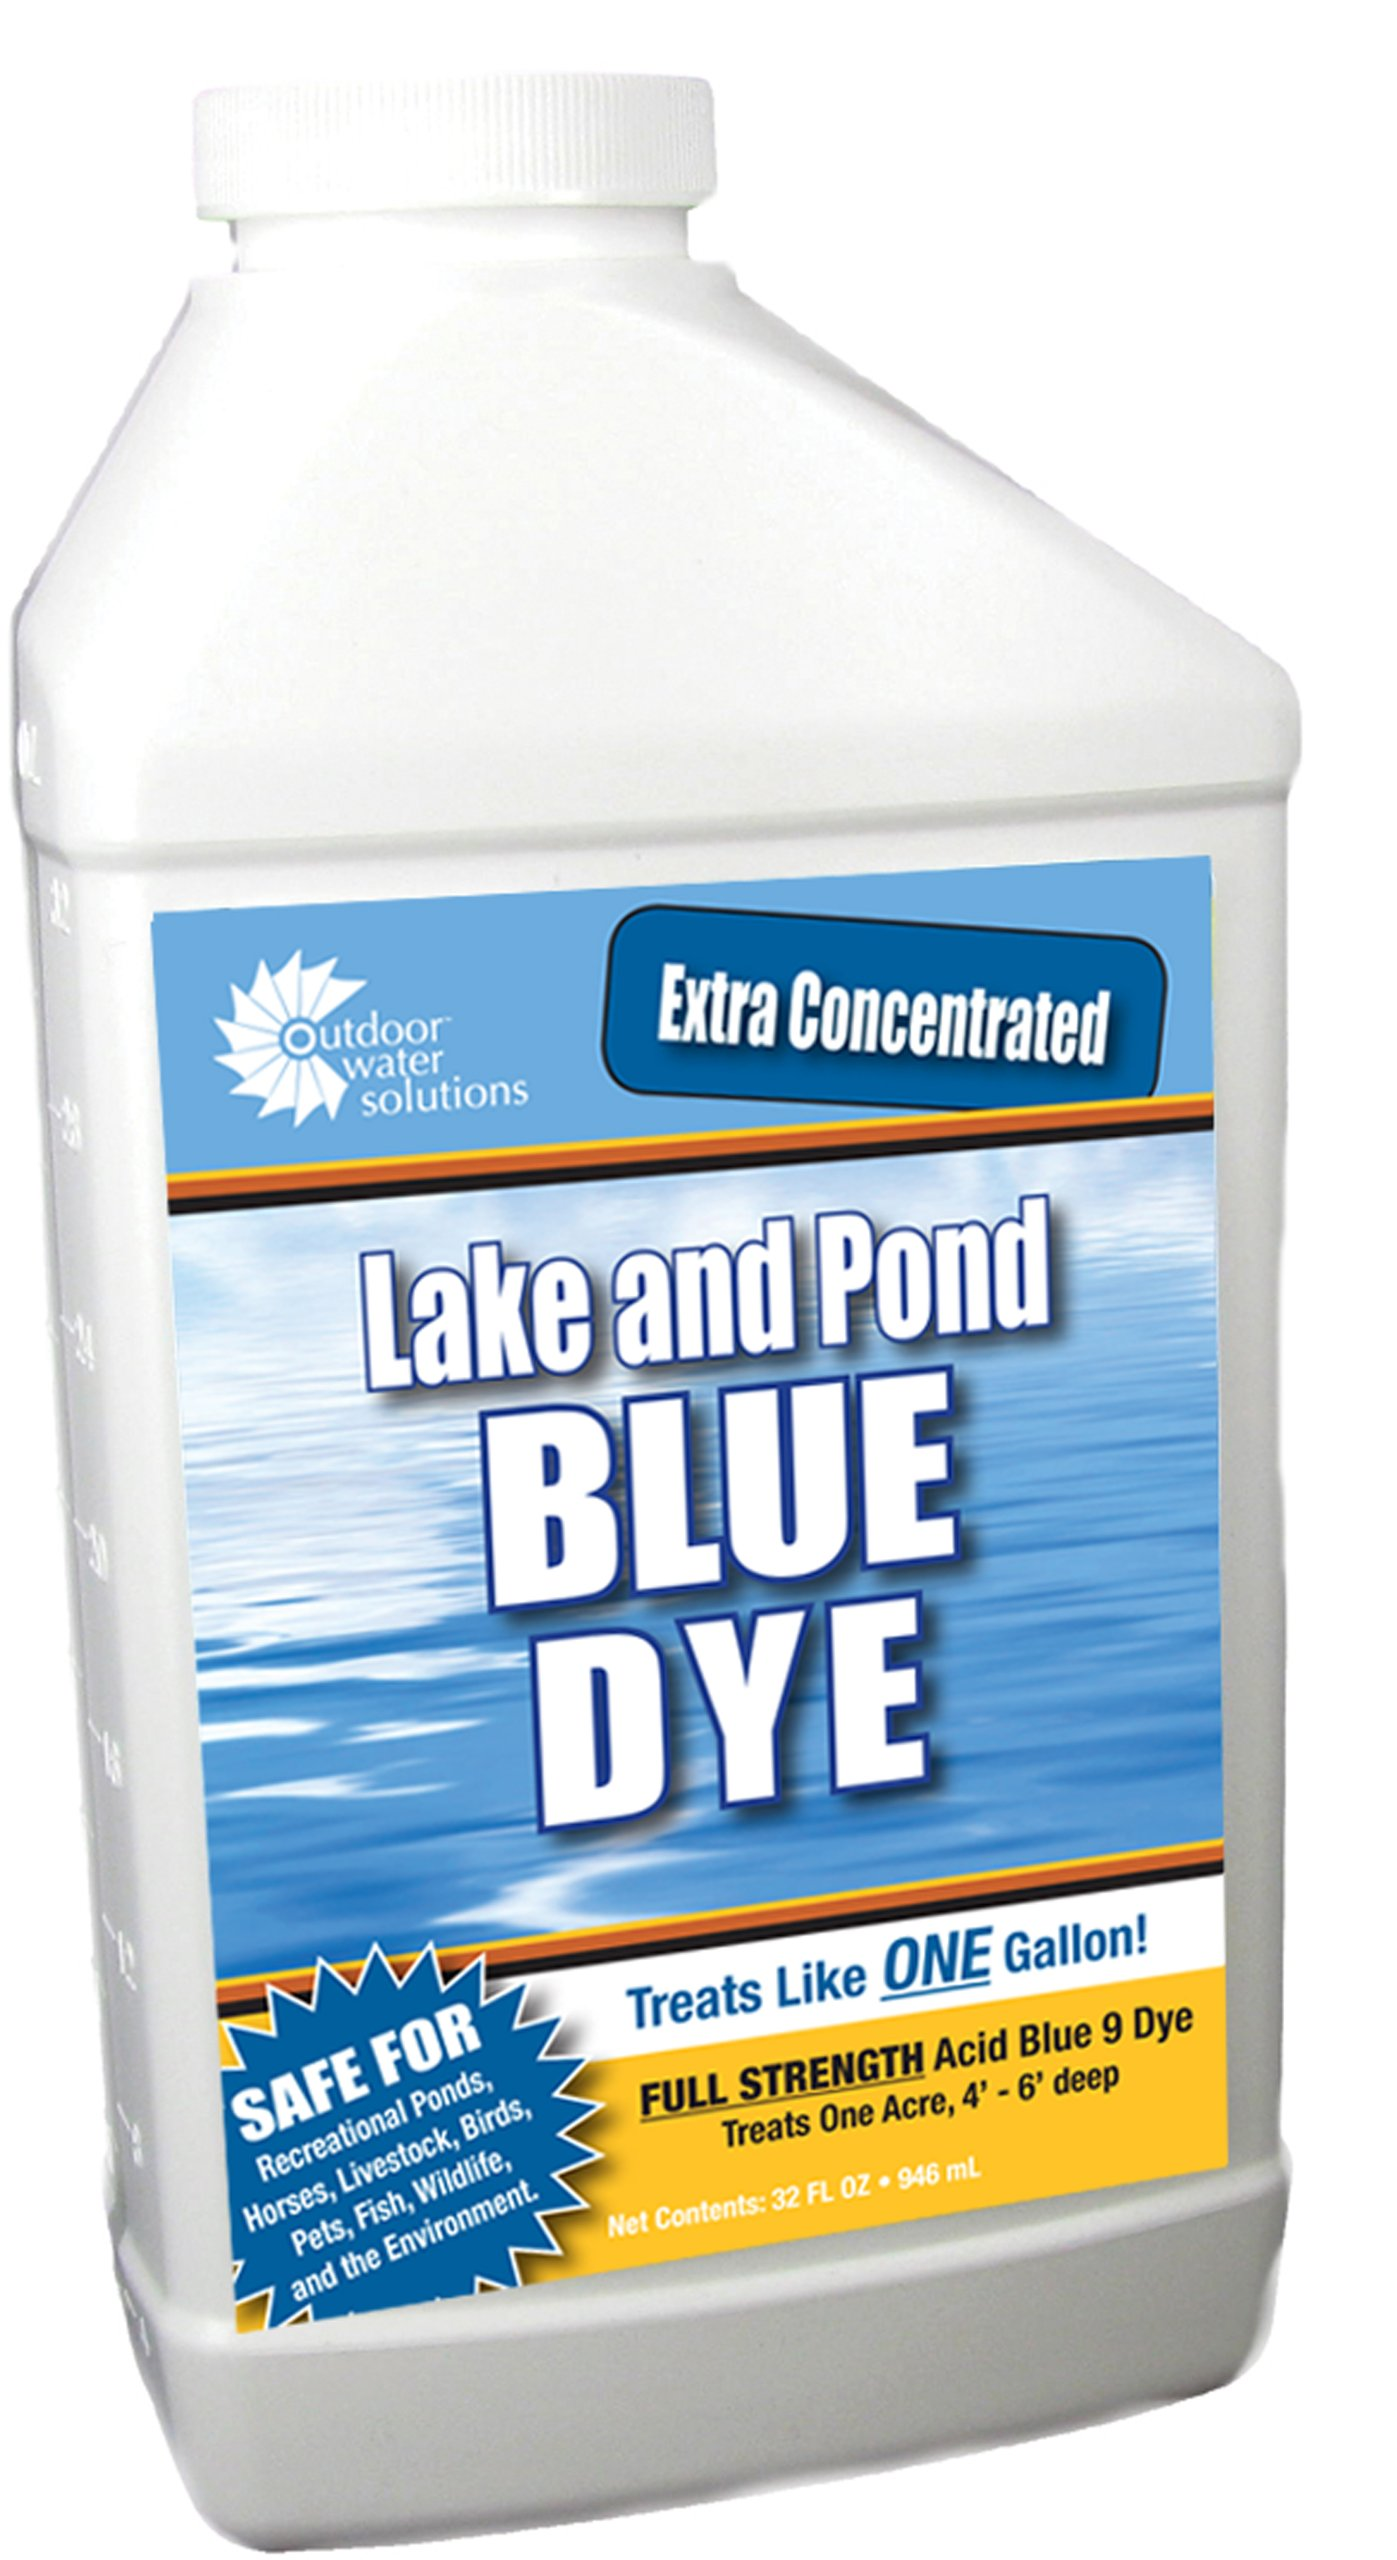 Outdoor Water Solutions PSP0125 Lake and Pond Dye, Blue